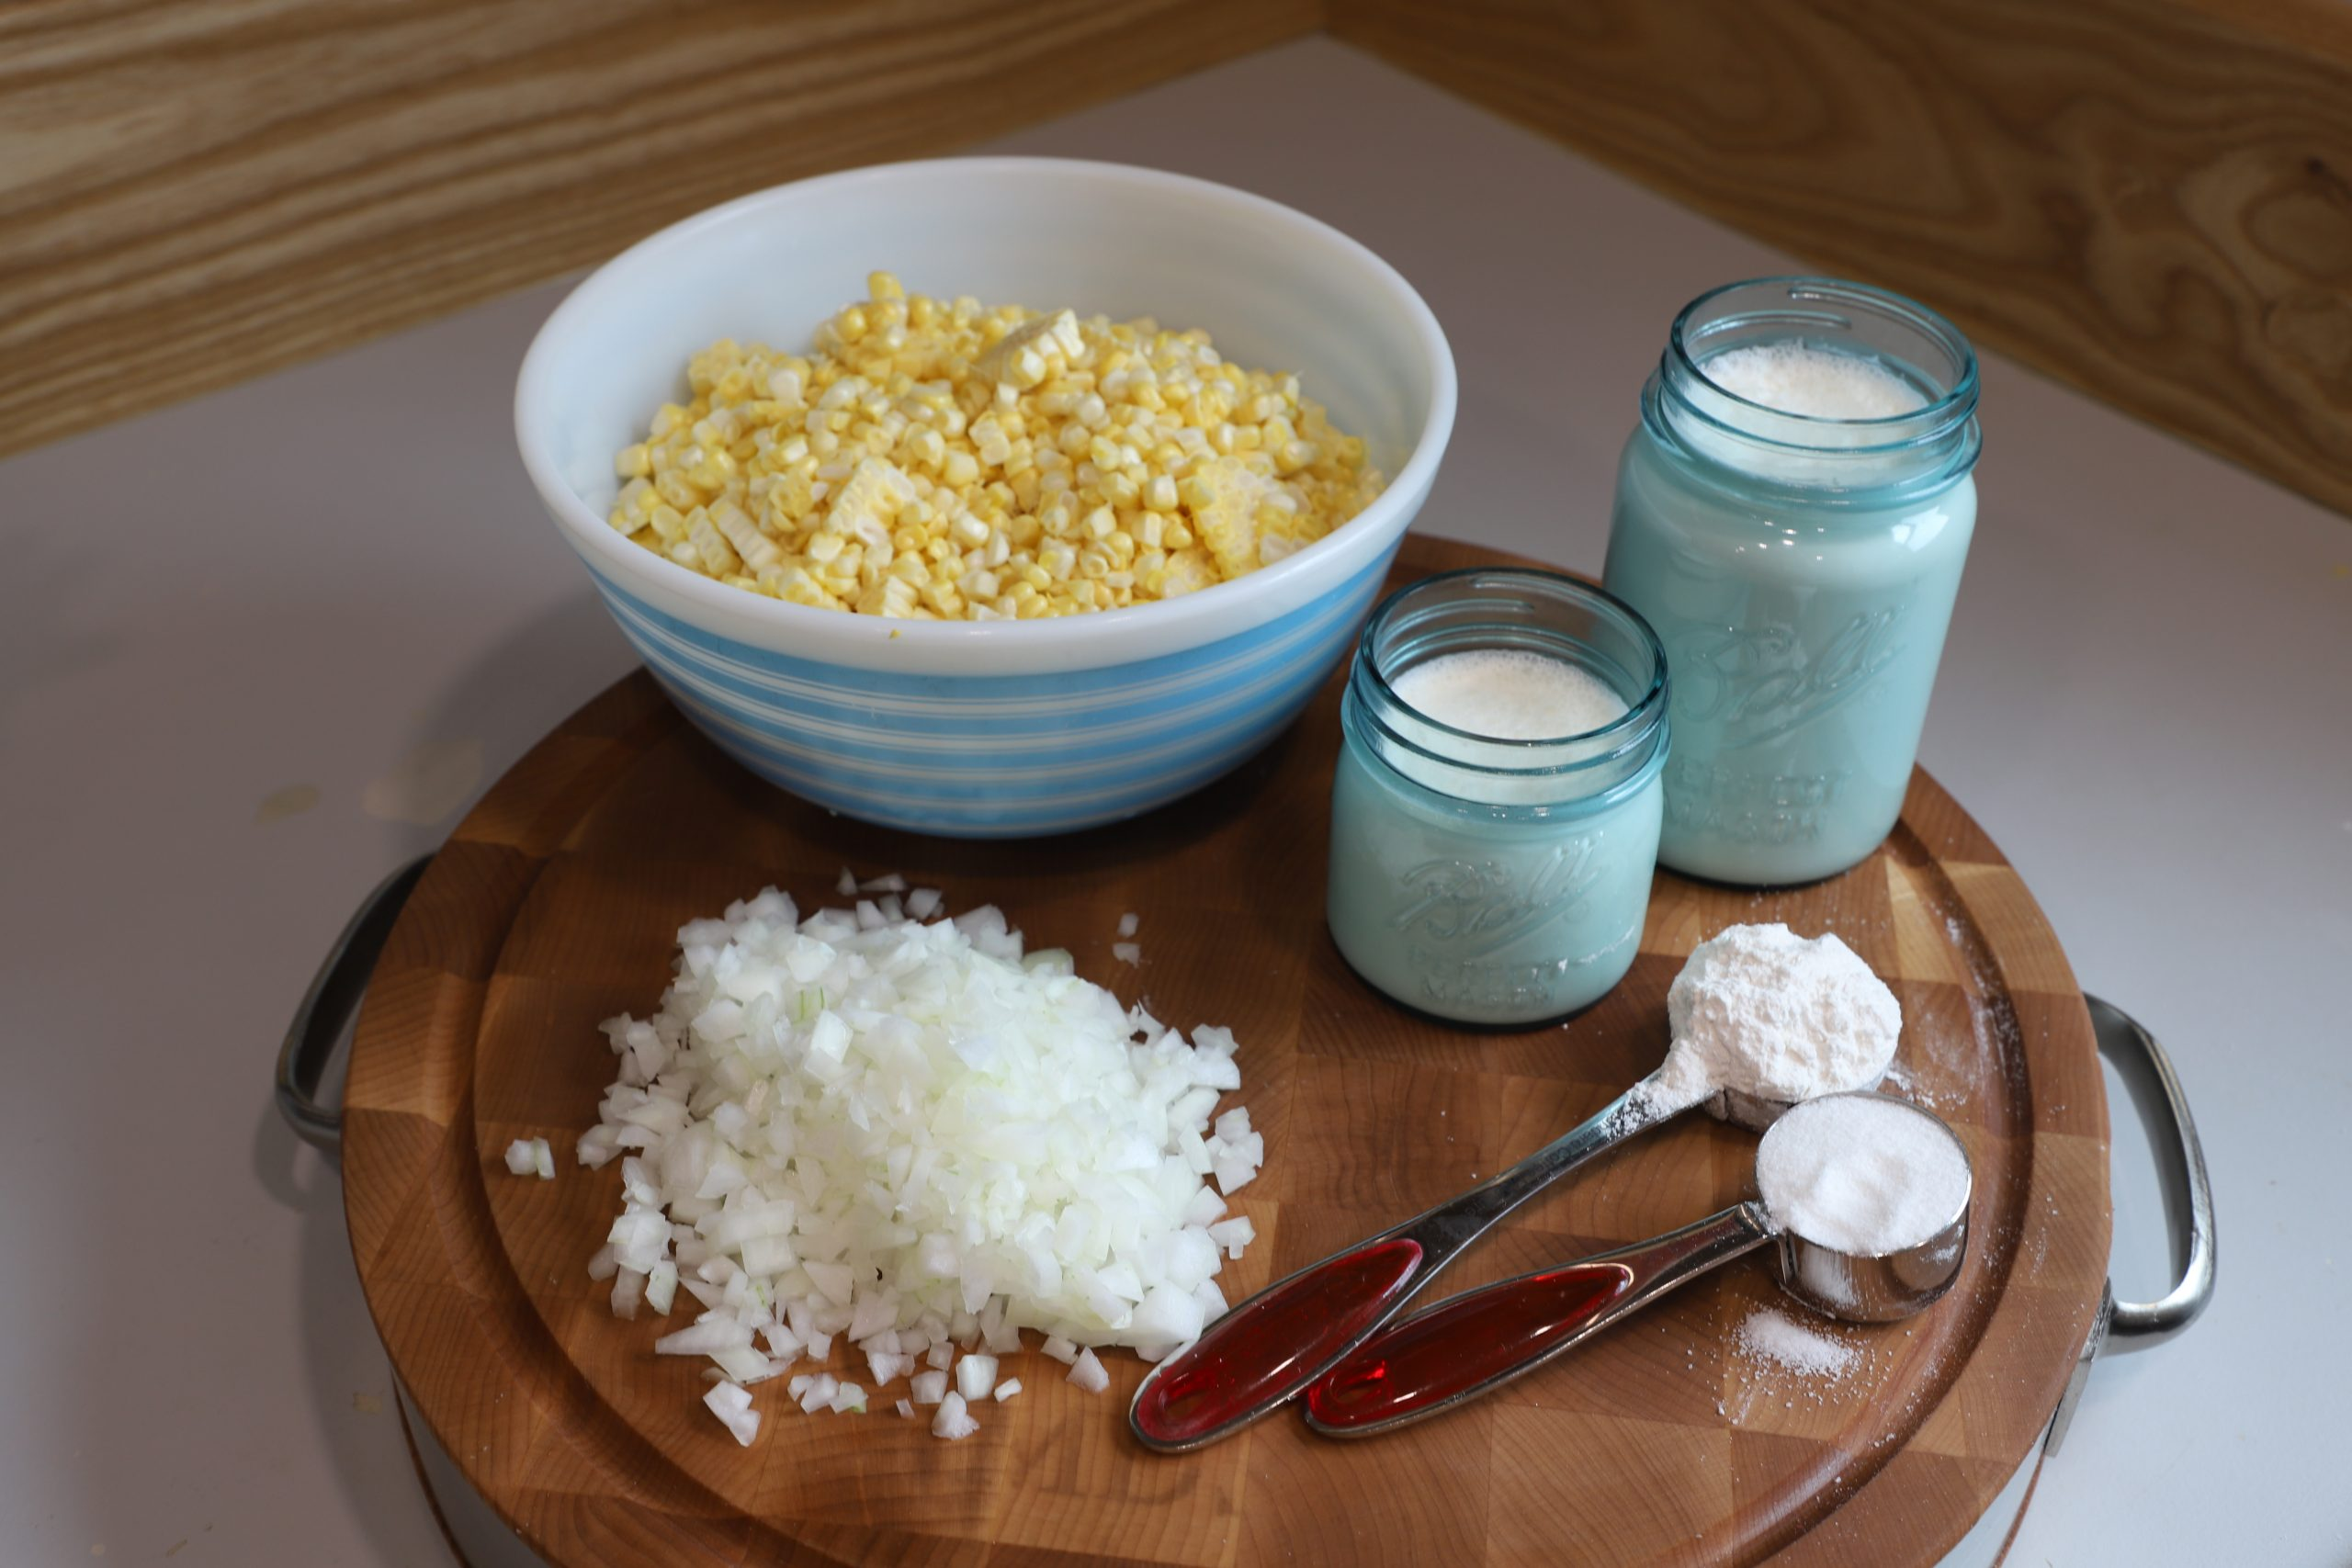 Ingredients for homemade creamed corn